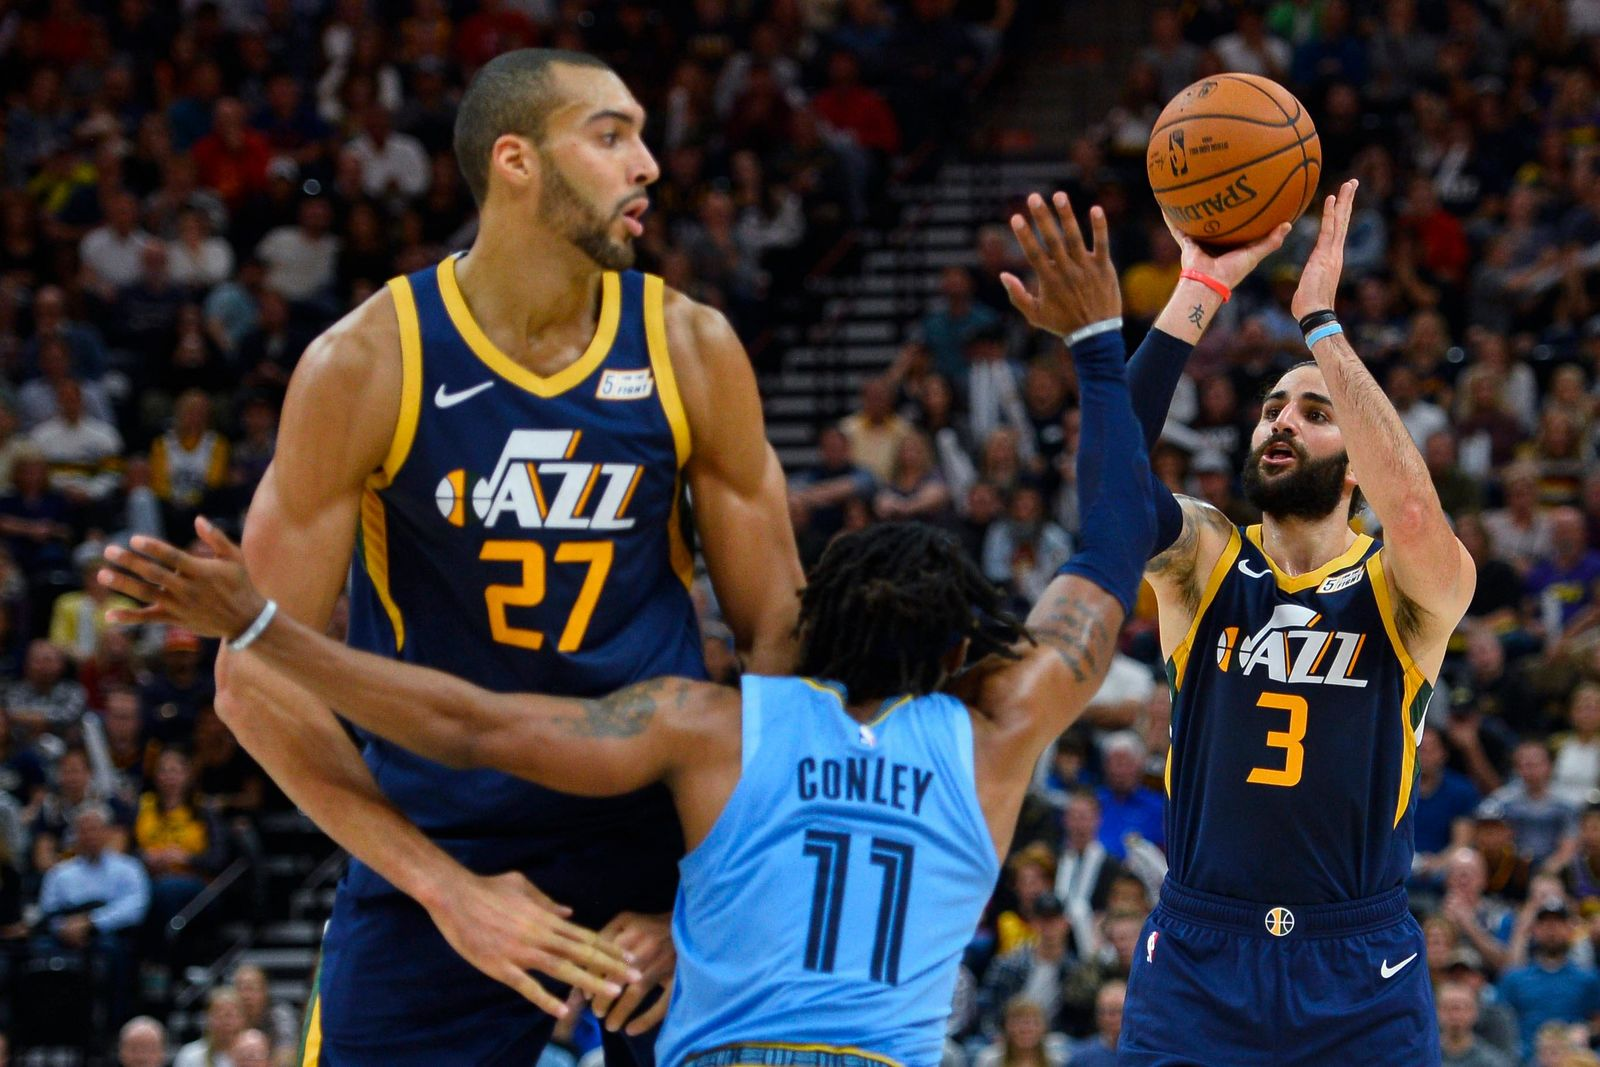 Utah Jazz guard Ricky Rubio (3) shoots over teammate Rudy Gobert (27) and Memphis Grizzlies guard Mike Conley (11) during the second half of an NBA basketball game Friday, Nov. 2, 2018, in Salt Lake City. (AP Photo/Alex Goodlett)